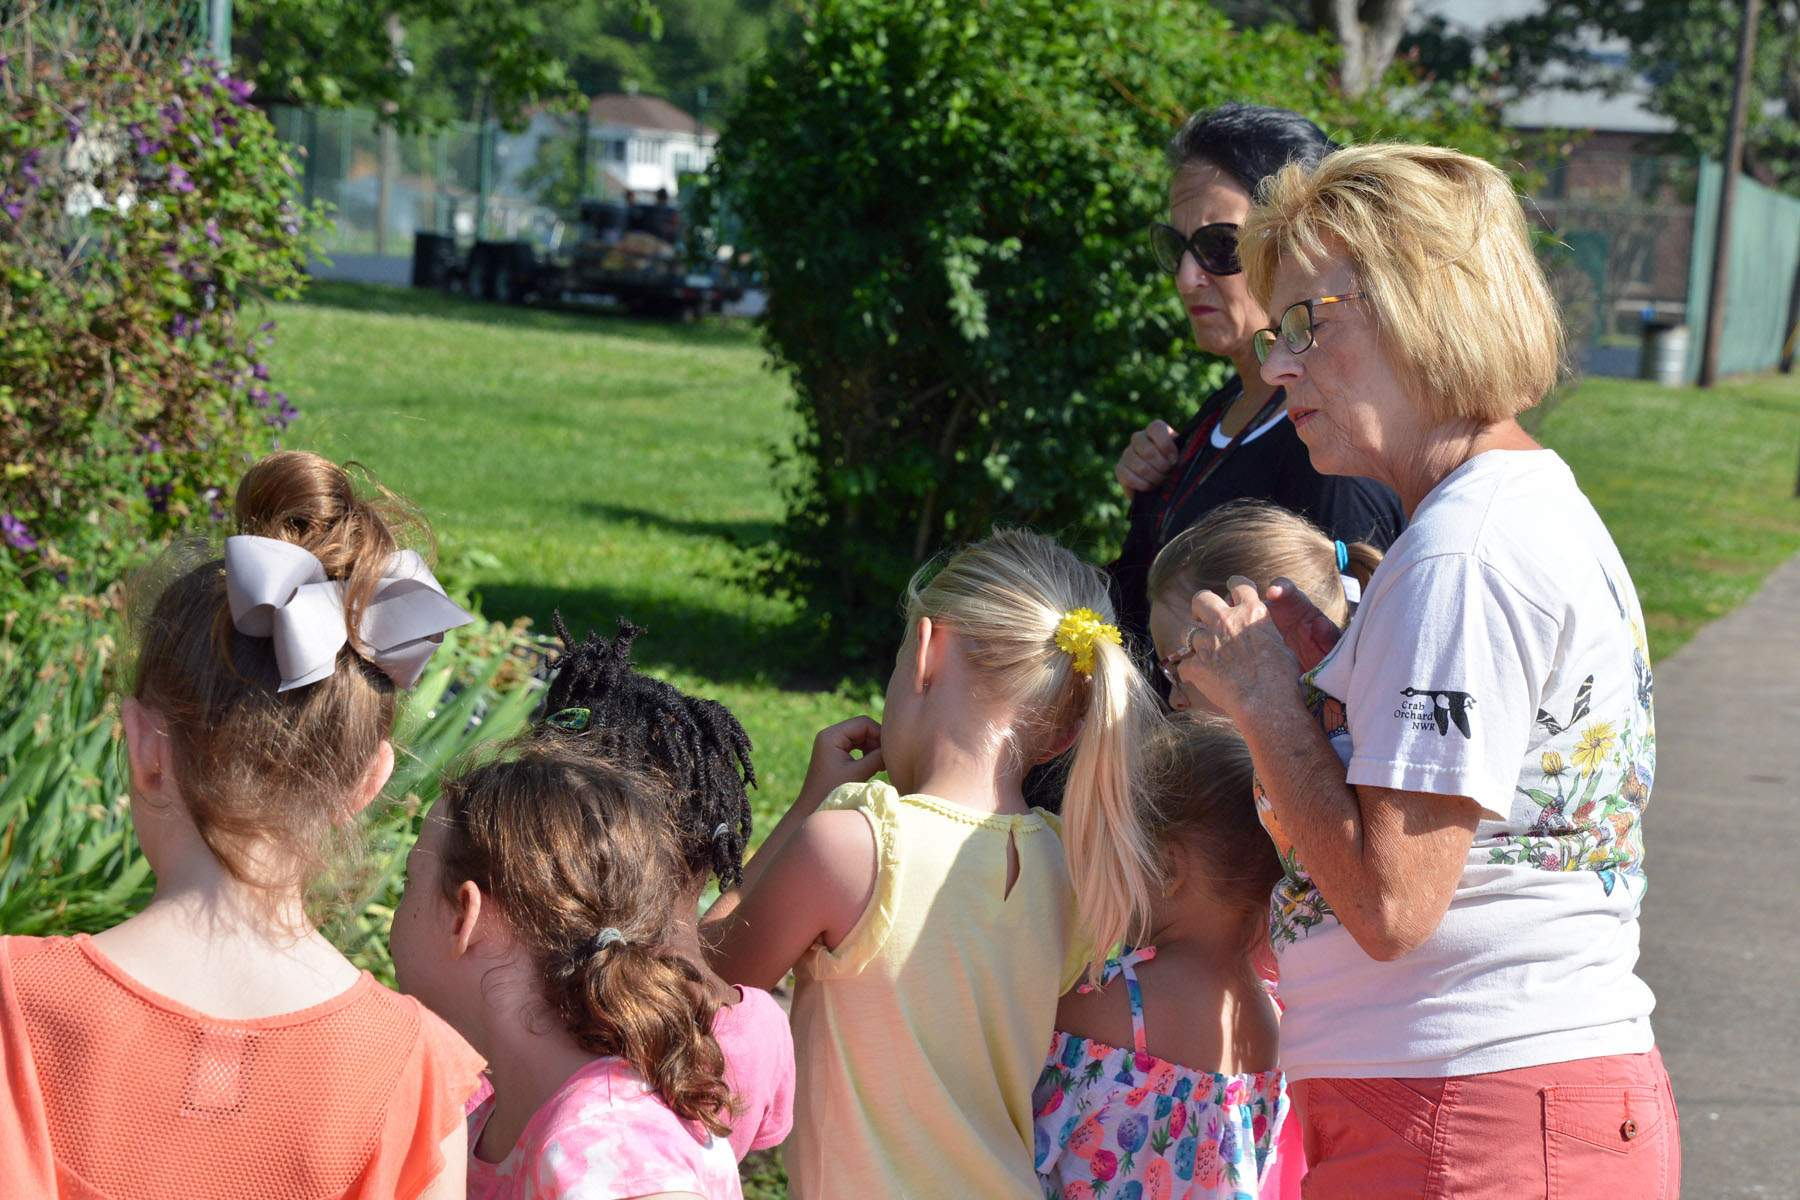 Pictured is first-grade teacher Sandy Stanhouse and several students getting tips on gardening from Garden Club member Joey Harsy.